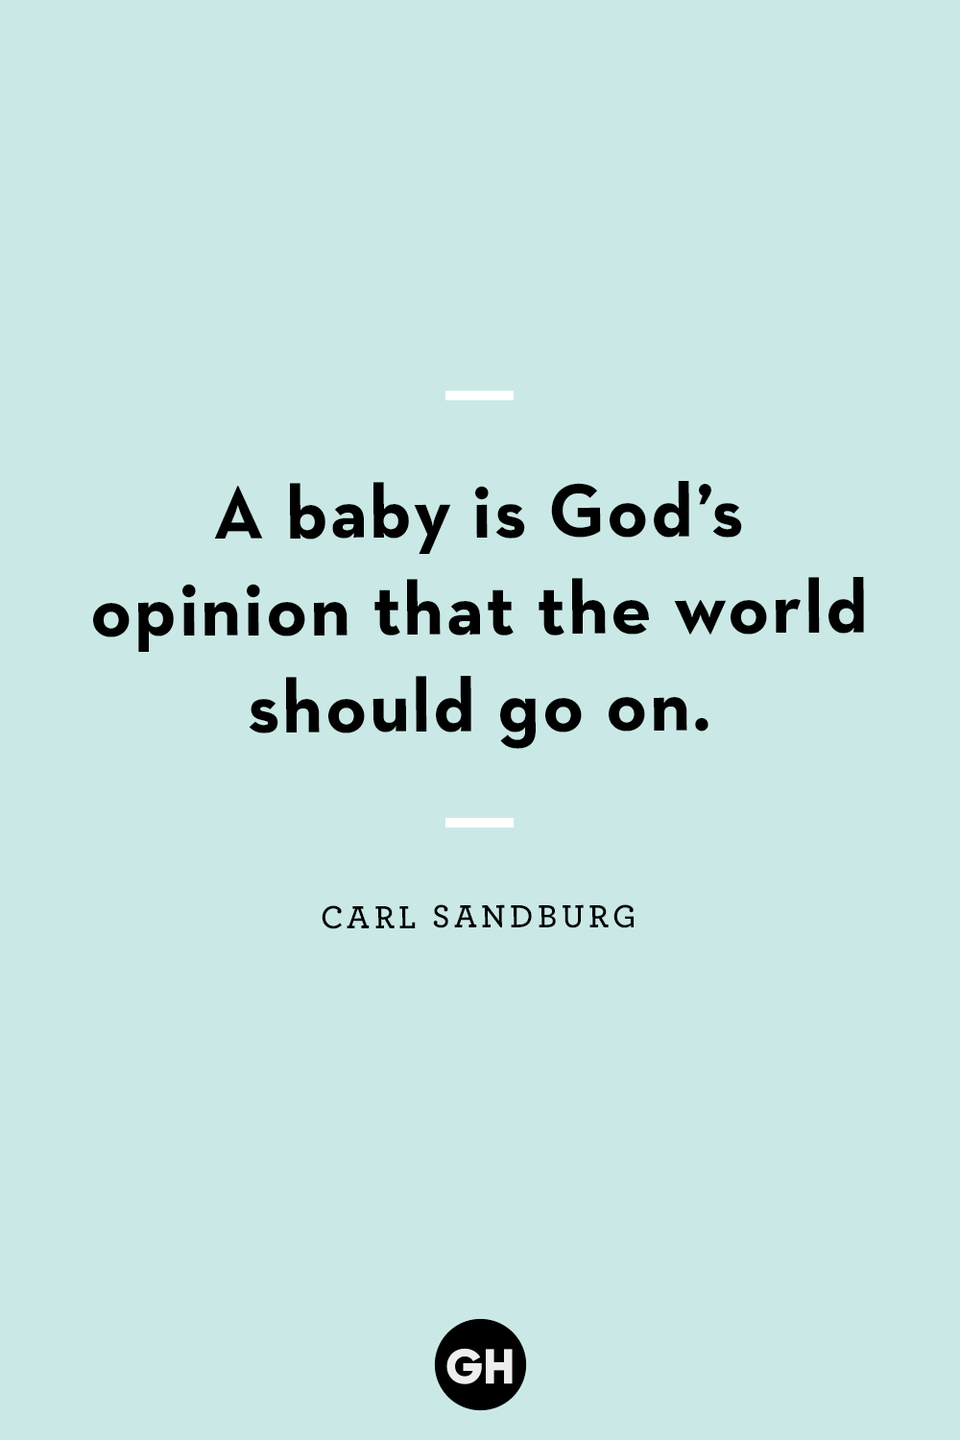 <p>A baby is God's opinion that the world should go on.</p>